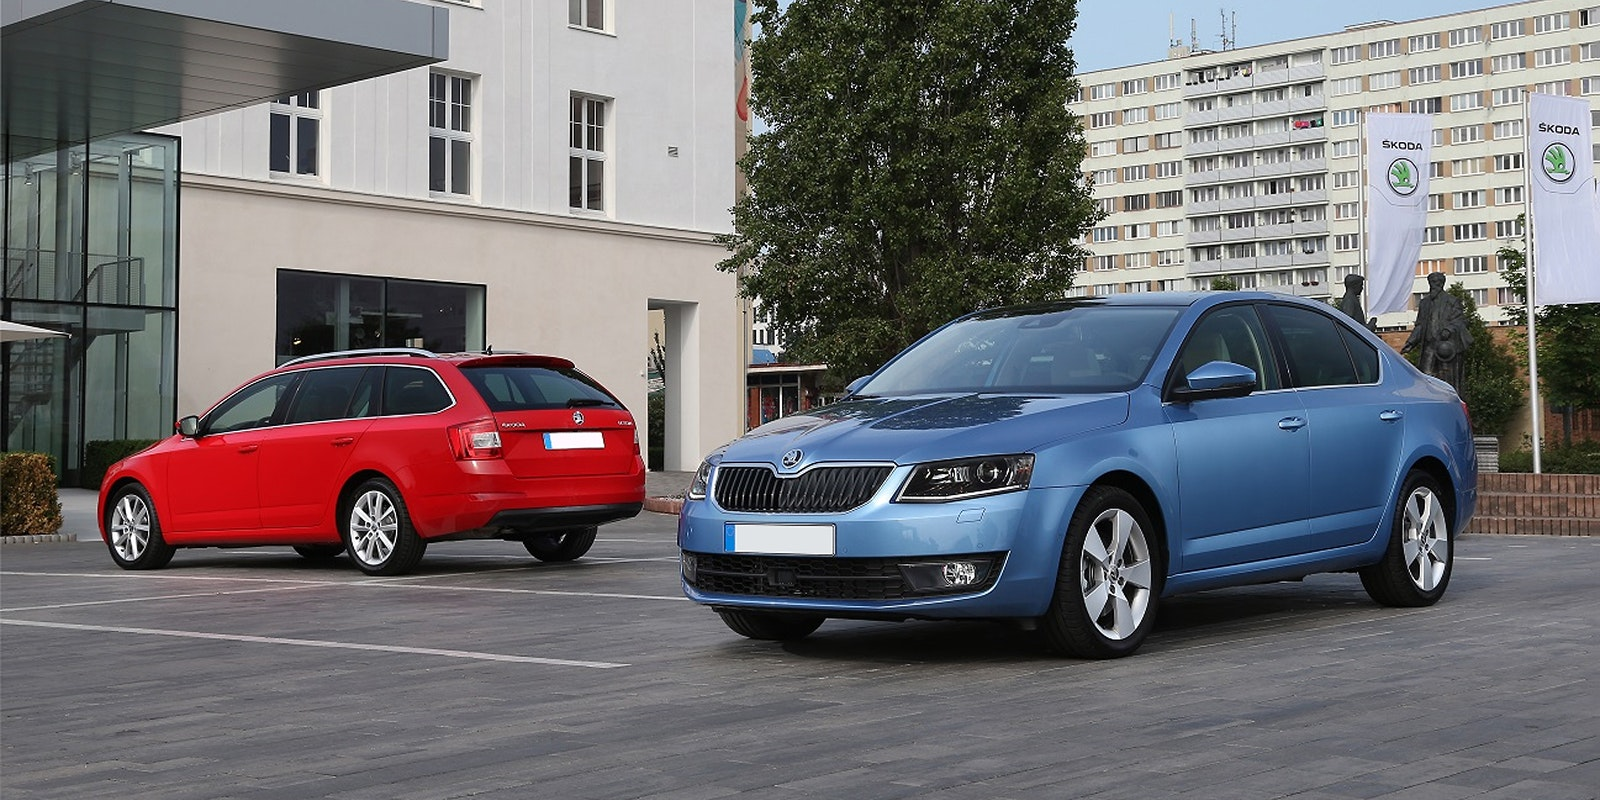 2016 Skoda Octavia Facelift Complete Guide Carwow